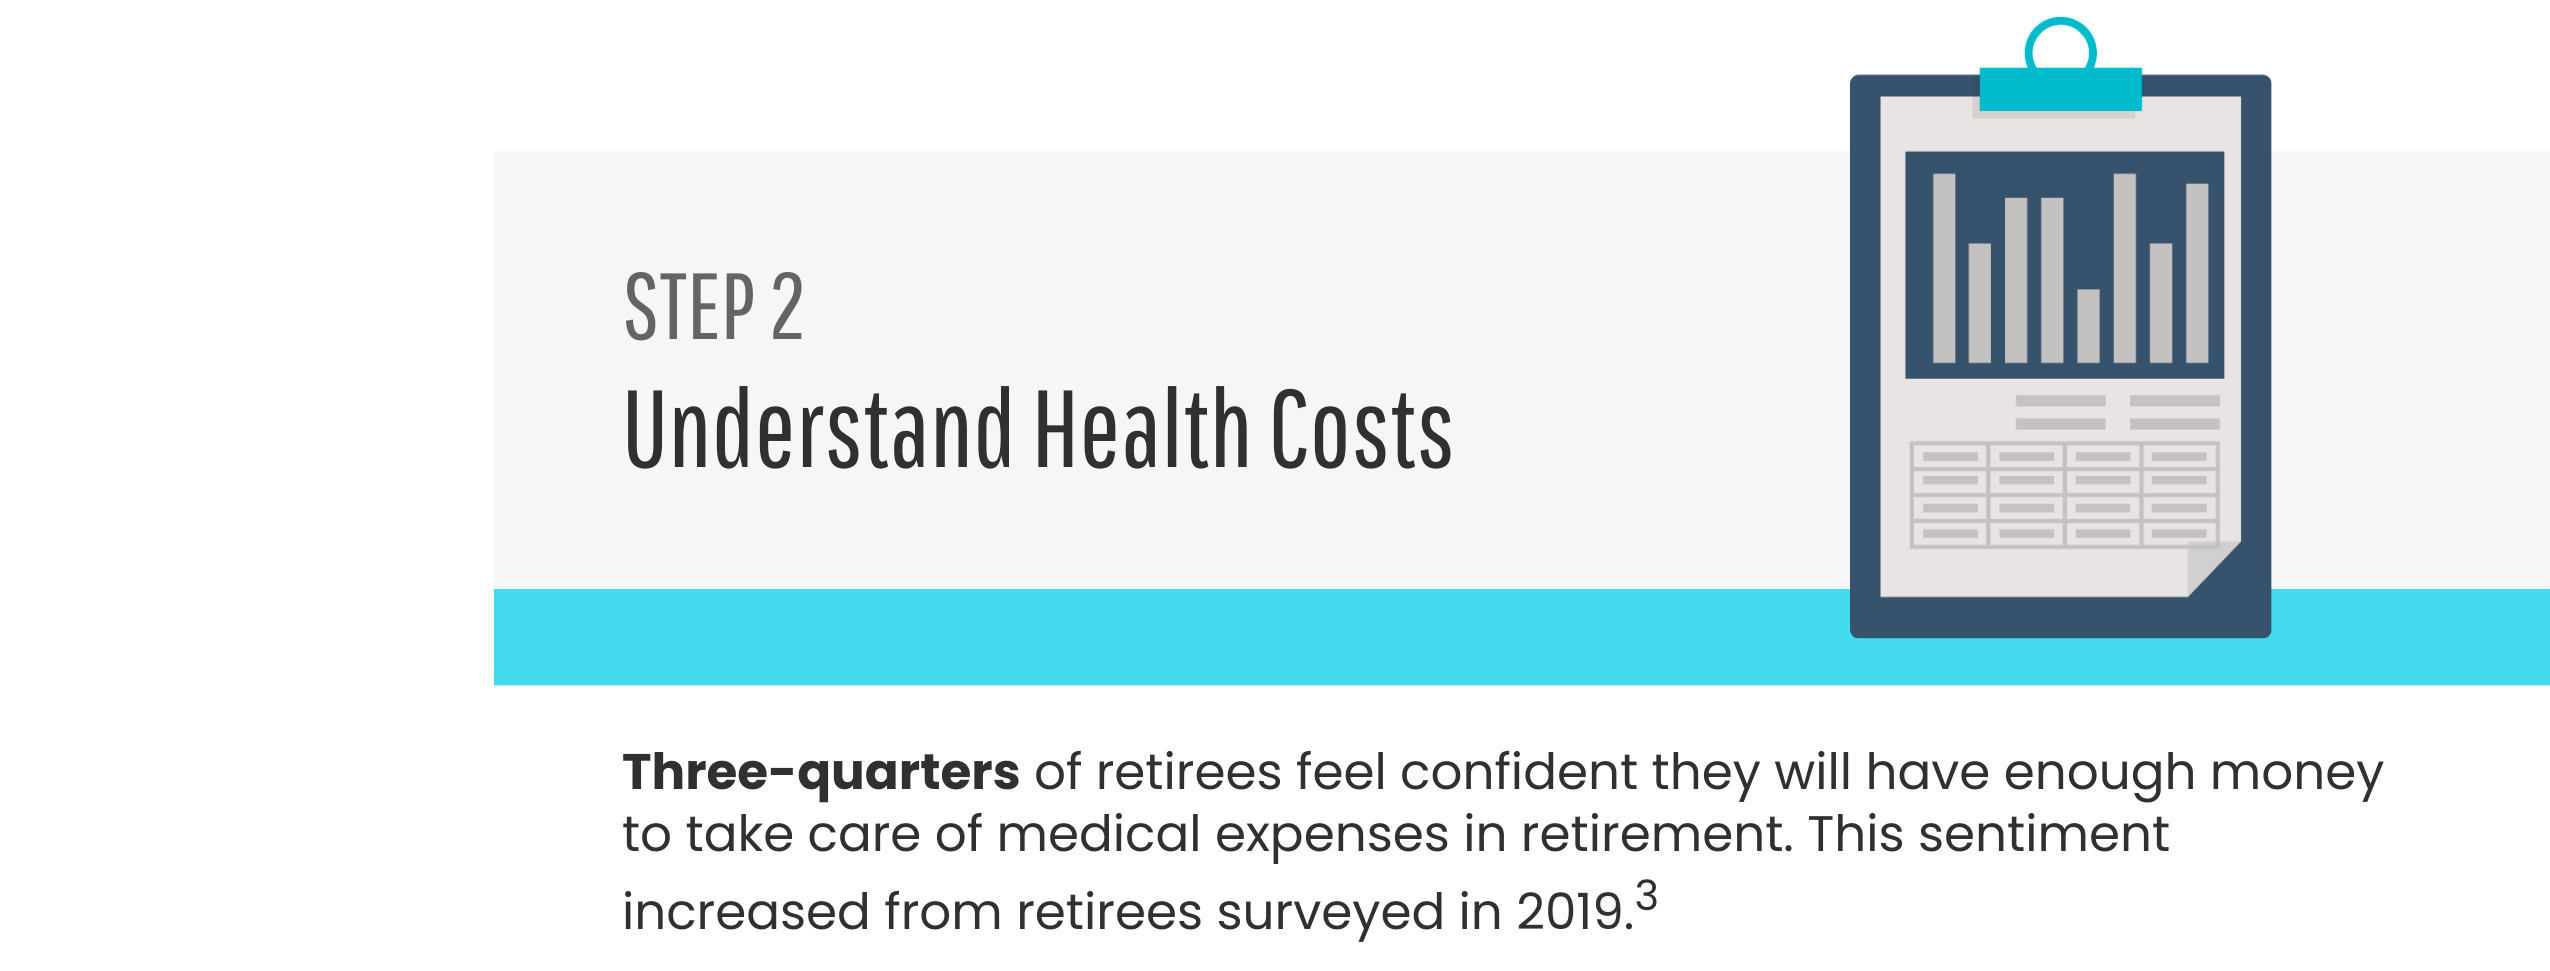 Step 2: Understand Health Costs. Three-quarters of retirees feel confident they will have enough money to take care of medical expenses in retirement. This sentiment increased from retirees surveyed in 2019.